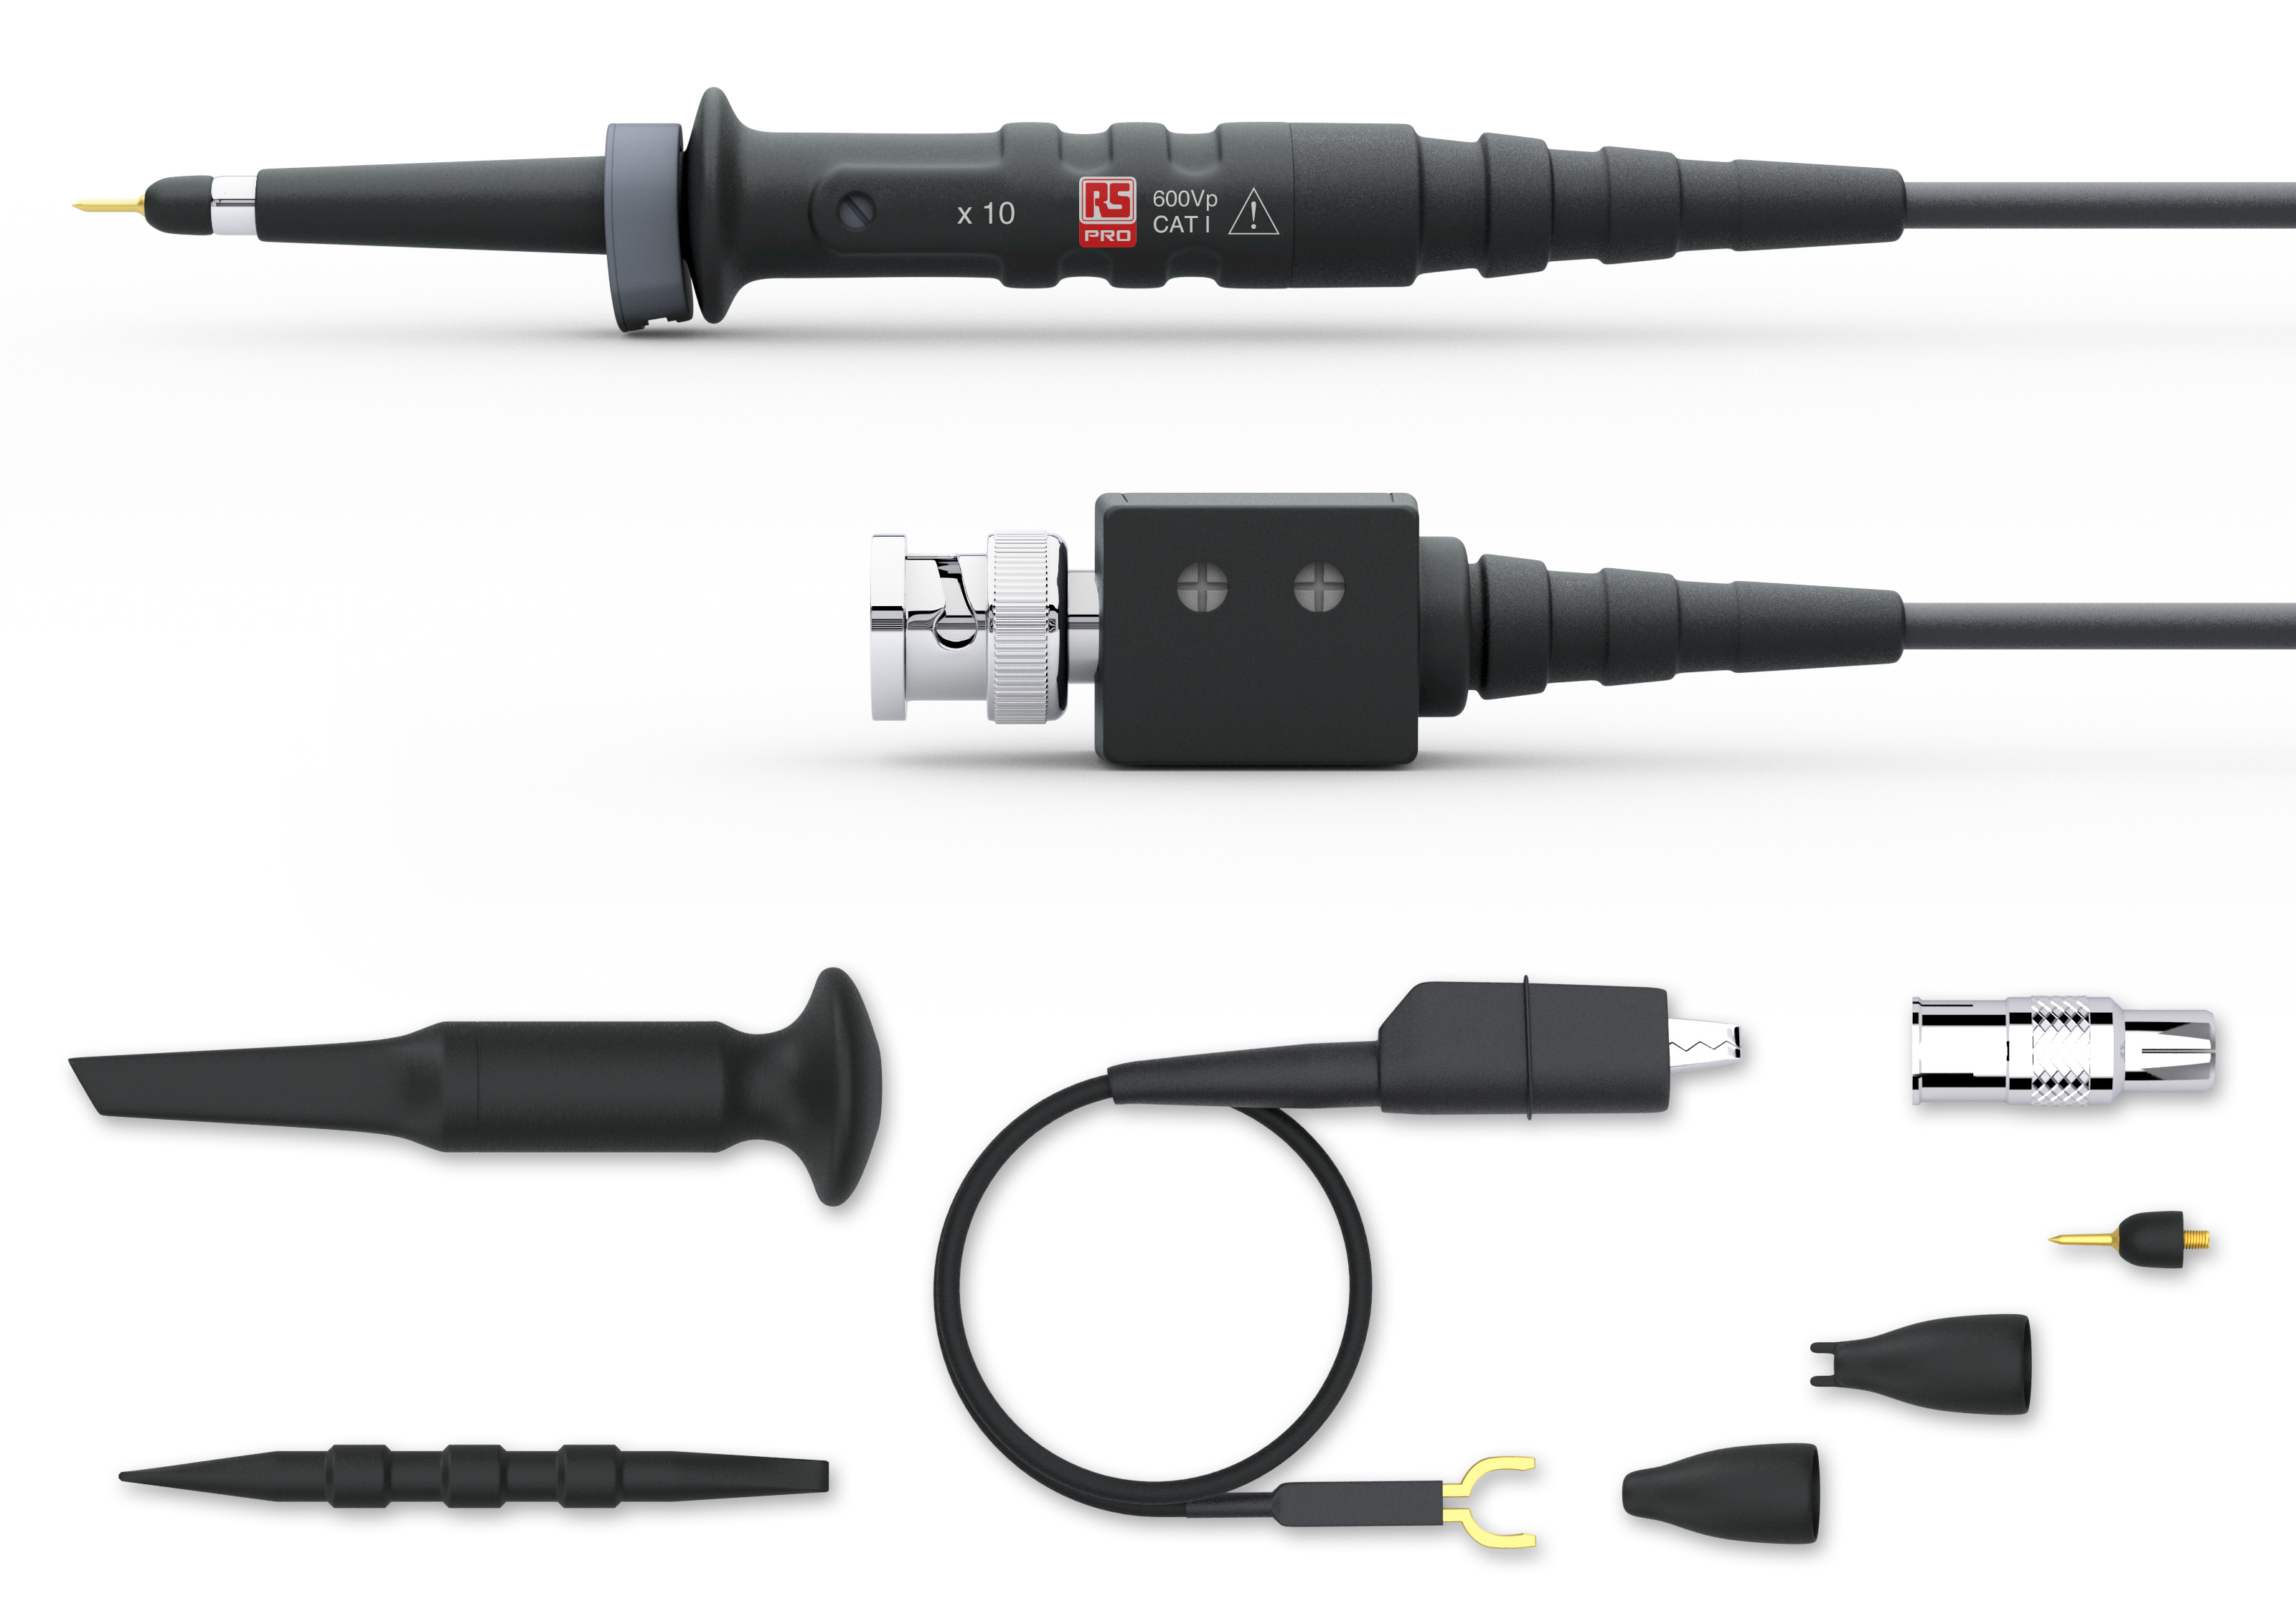 Test and measurement accessories from RS Components